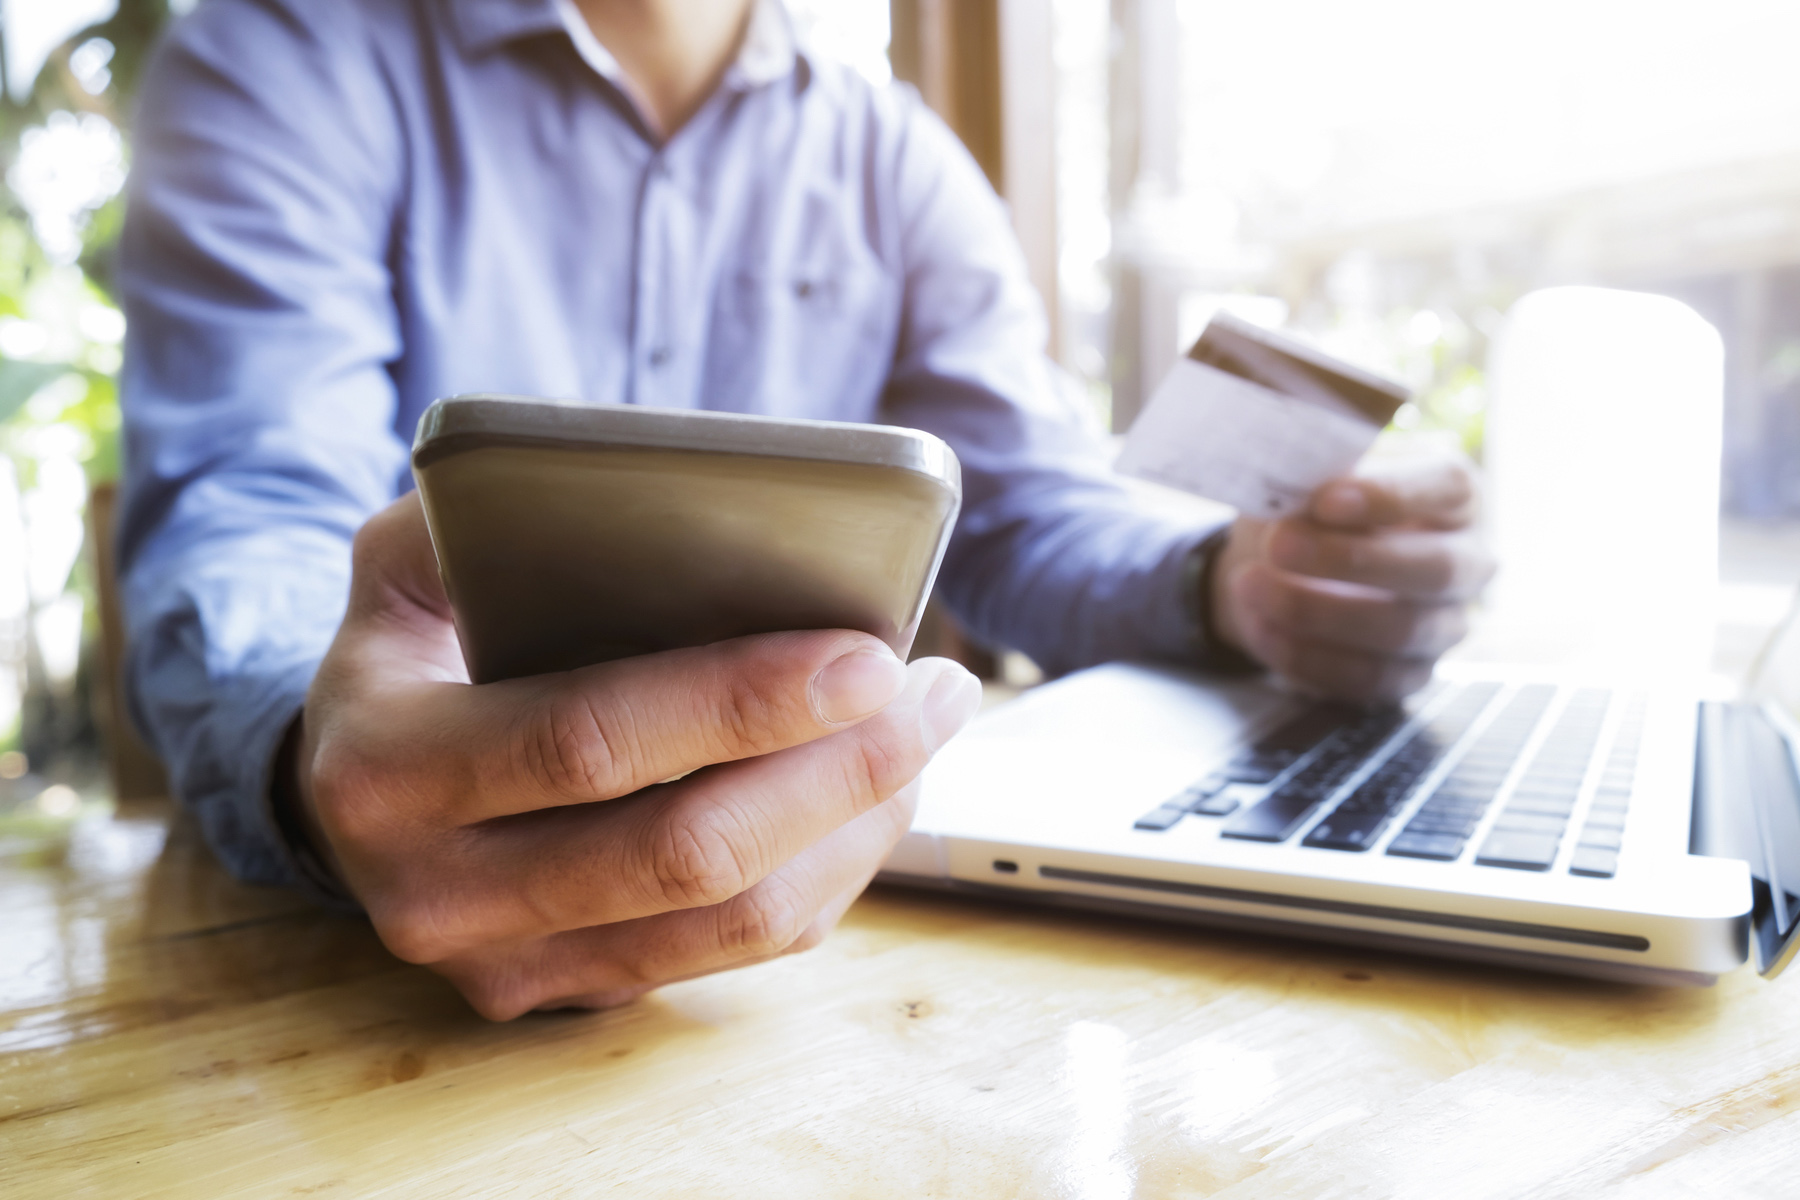 Banking on a mobile phone